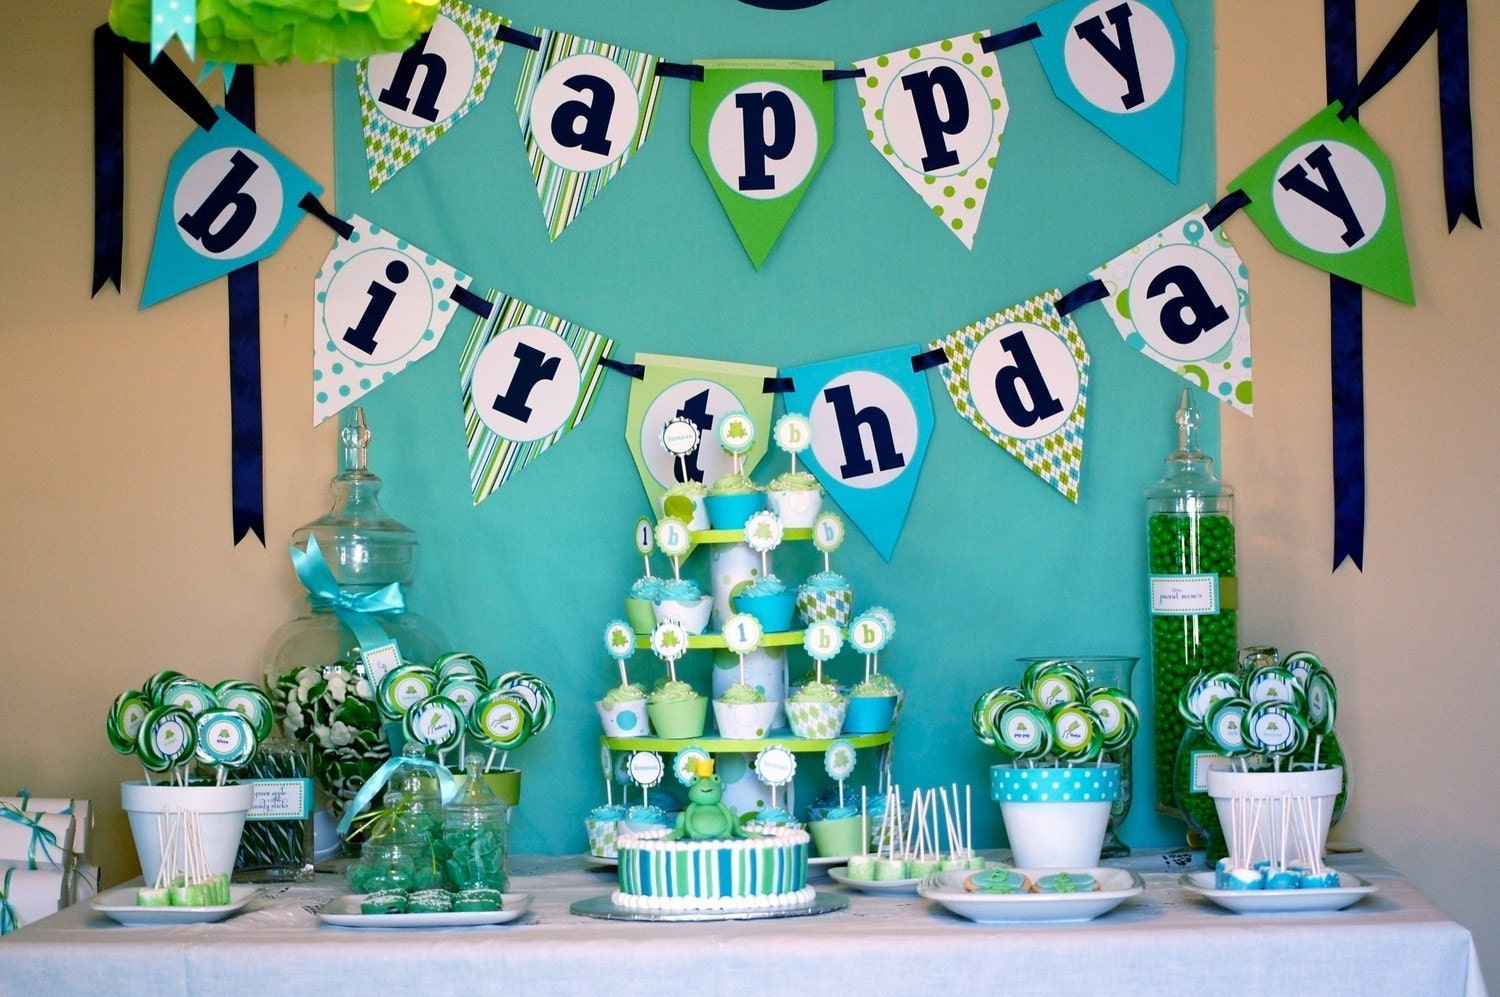 frog prince happy birthday banner diy by frogprincepaperie